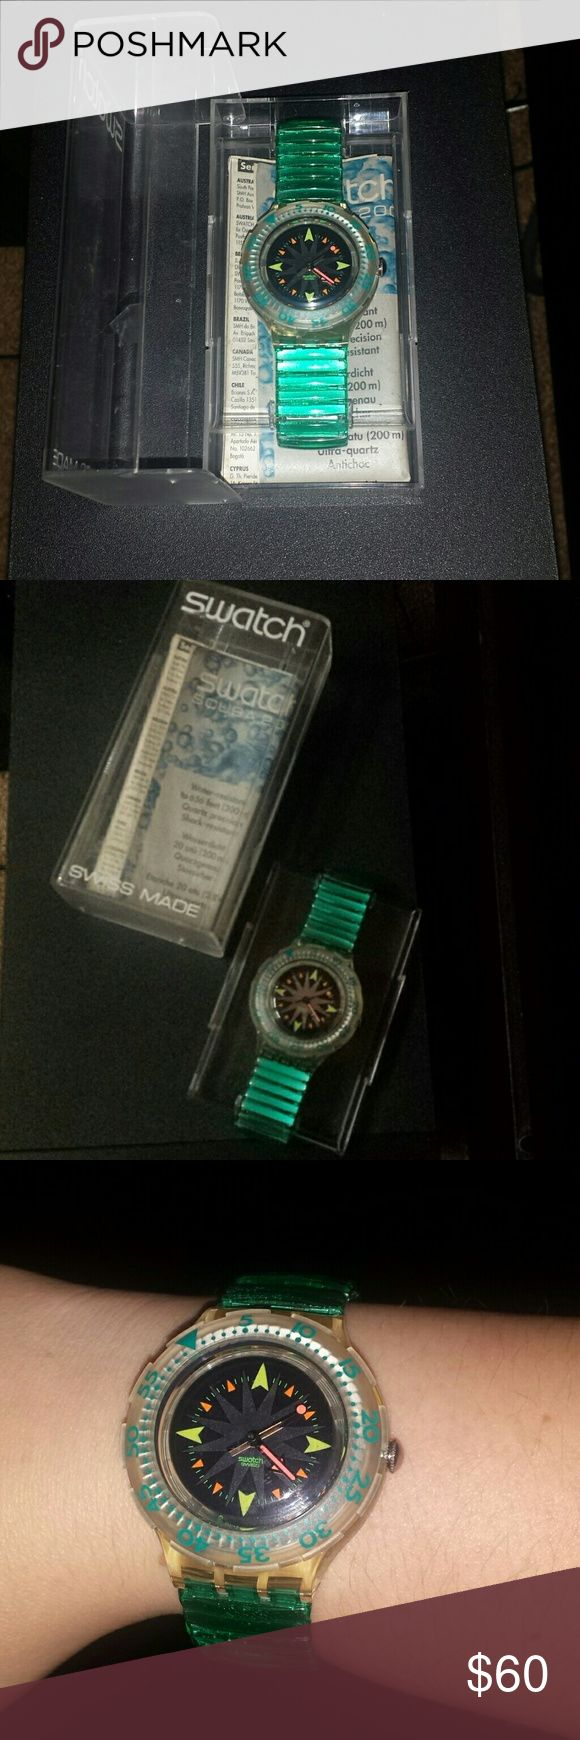 Swatch Scuba 200 Mint Drops Jelly Bean Band Watch 1993 Vintage new in box with original instructions and working battery.  Excellent condition band and face. No scratches on watch. Beautiful star burst pattern. Swiss made, water resistant 20 bar dive.    SDK108 SDK109 Mint Drops Swatch watch Swatch Accessories Watches